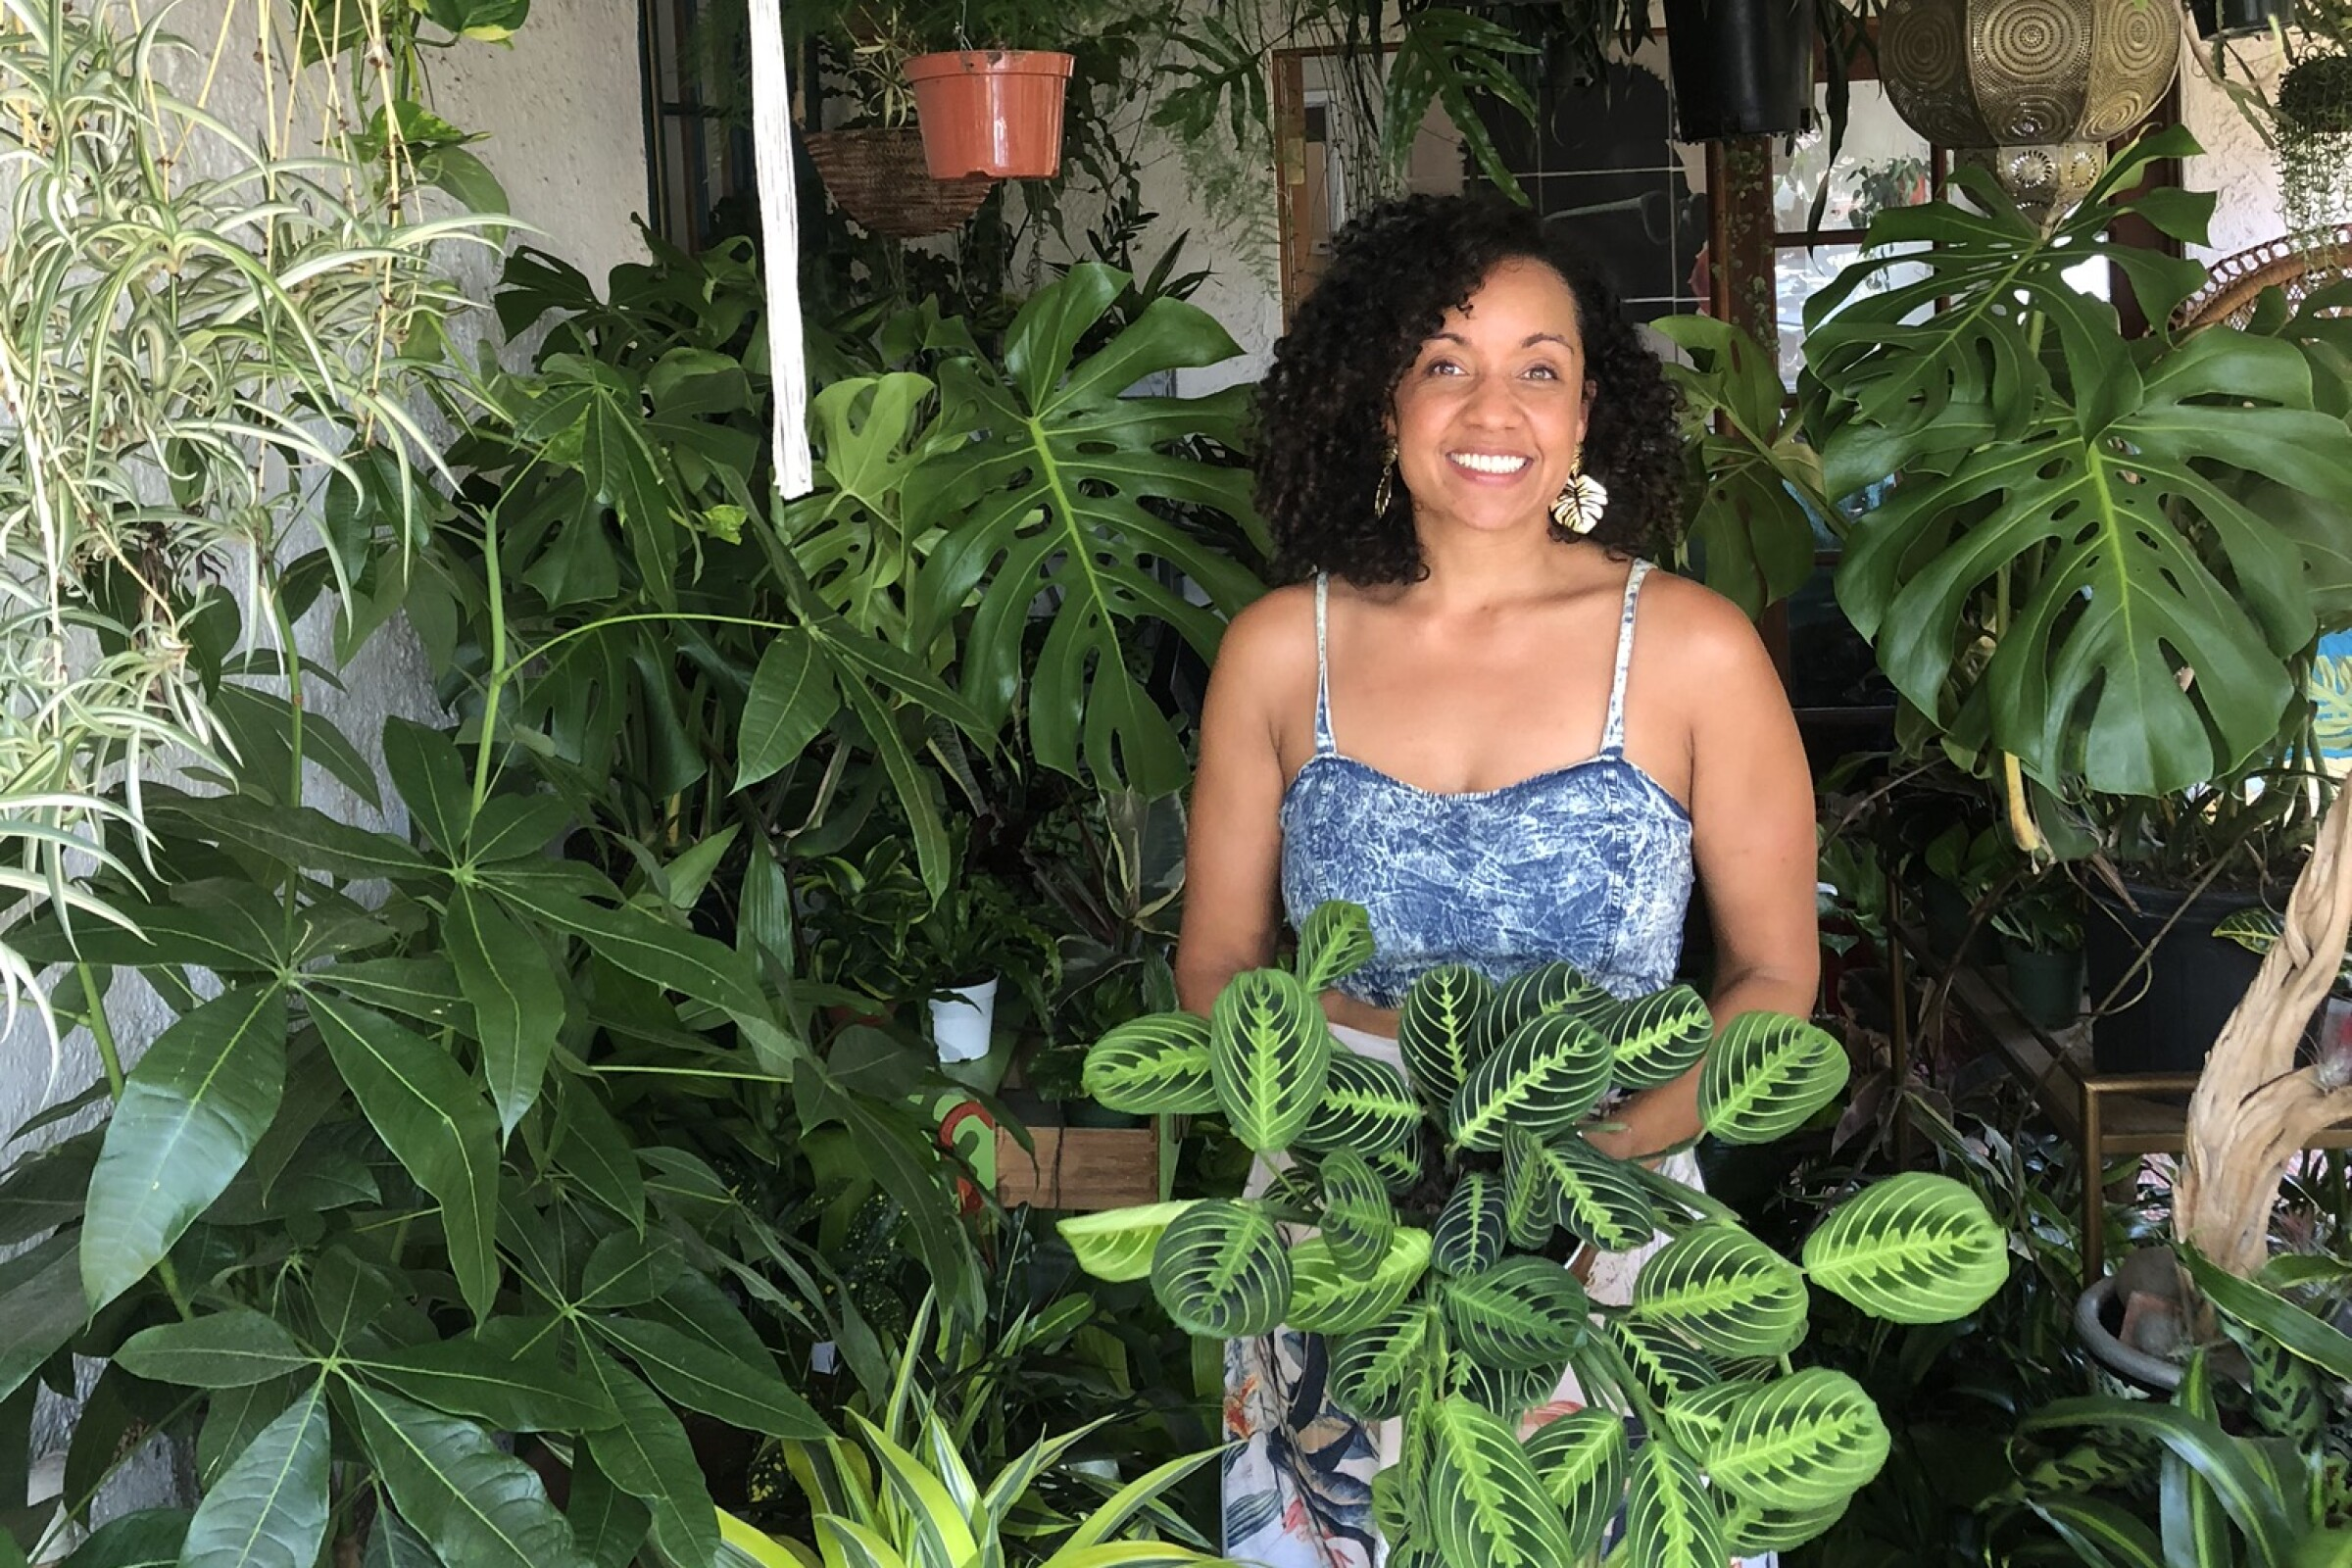 Stephanie Ward, the sole owner of Imperial Beach plant shop Jungle Fever San Diego